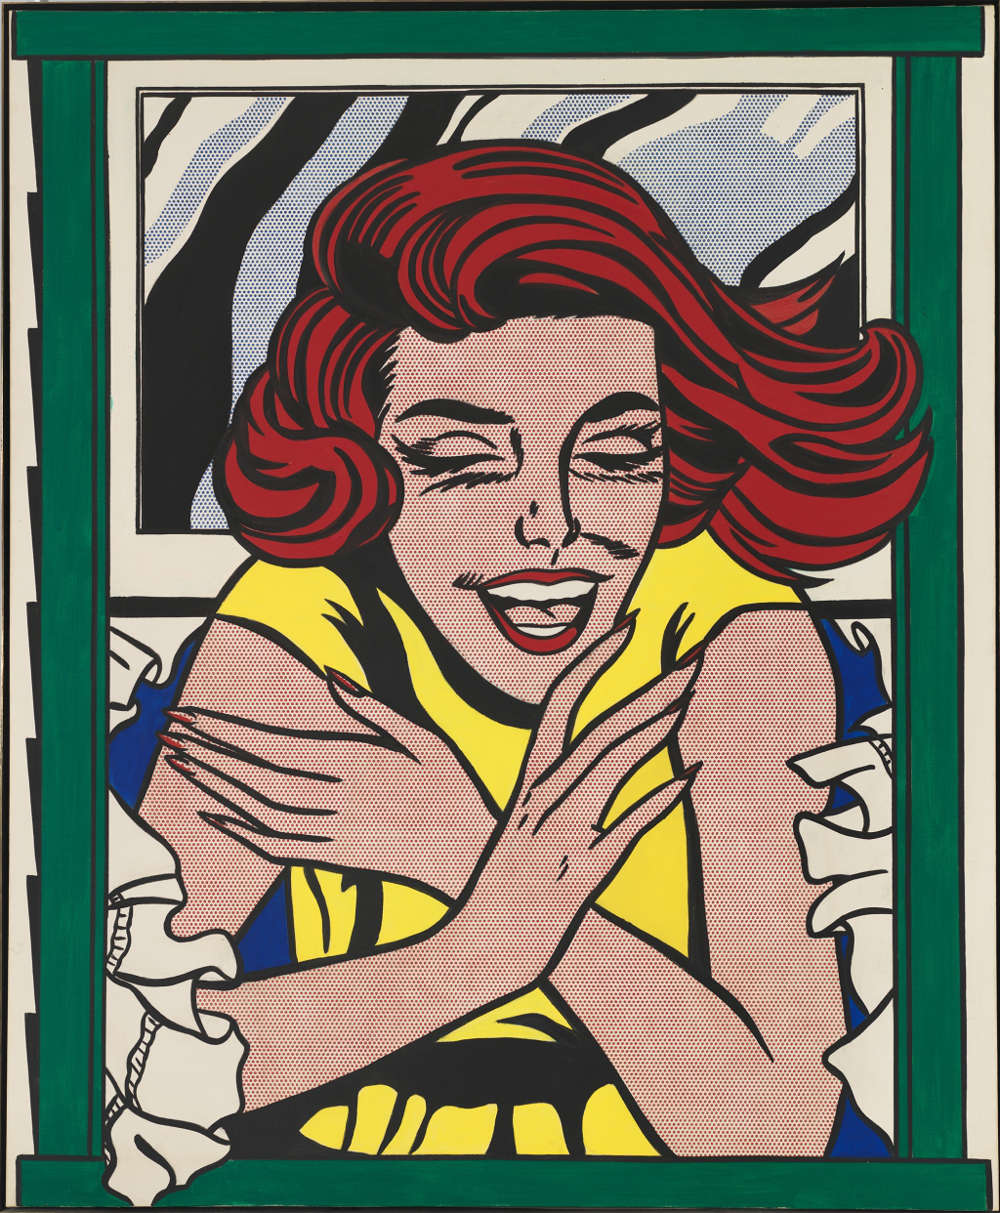 POP ART - Icons that matter at Musée Maillol